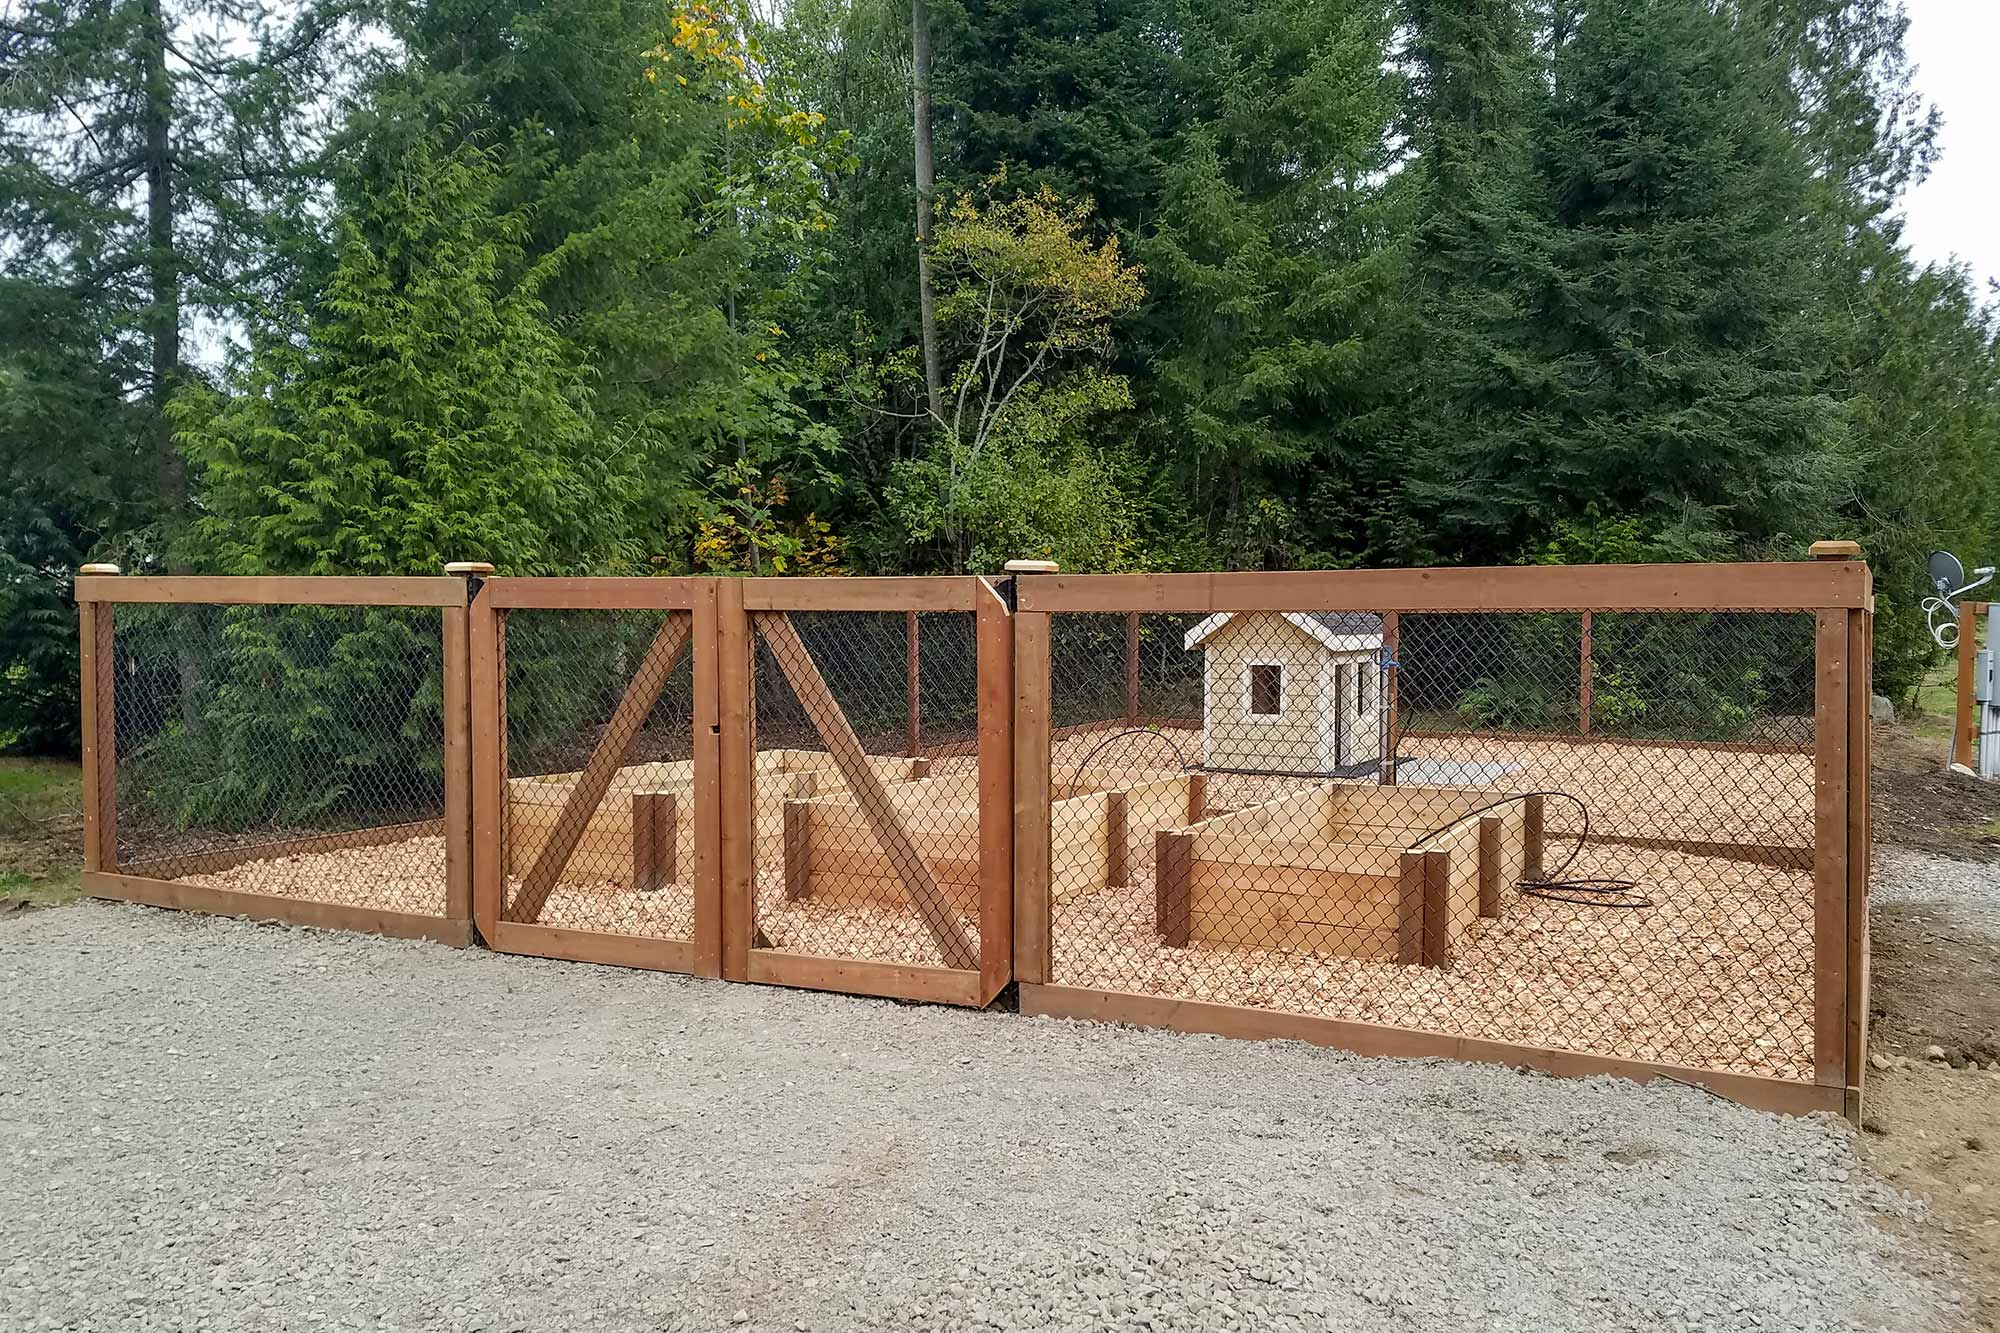 AJB Landscaping & Fence built this unique outdoor dog kennel that doubles as a raised garden.